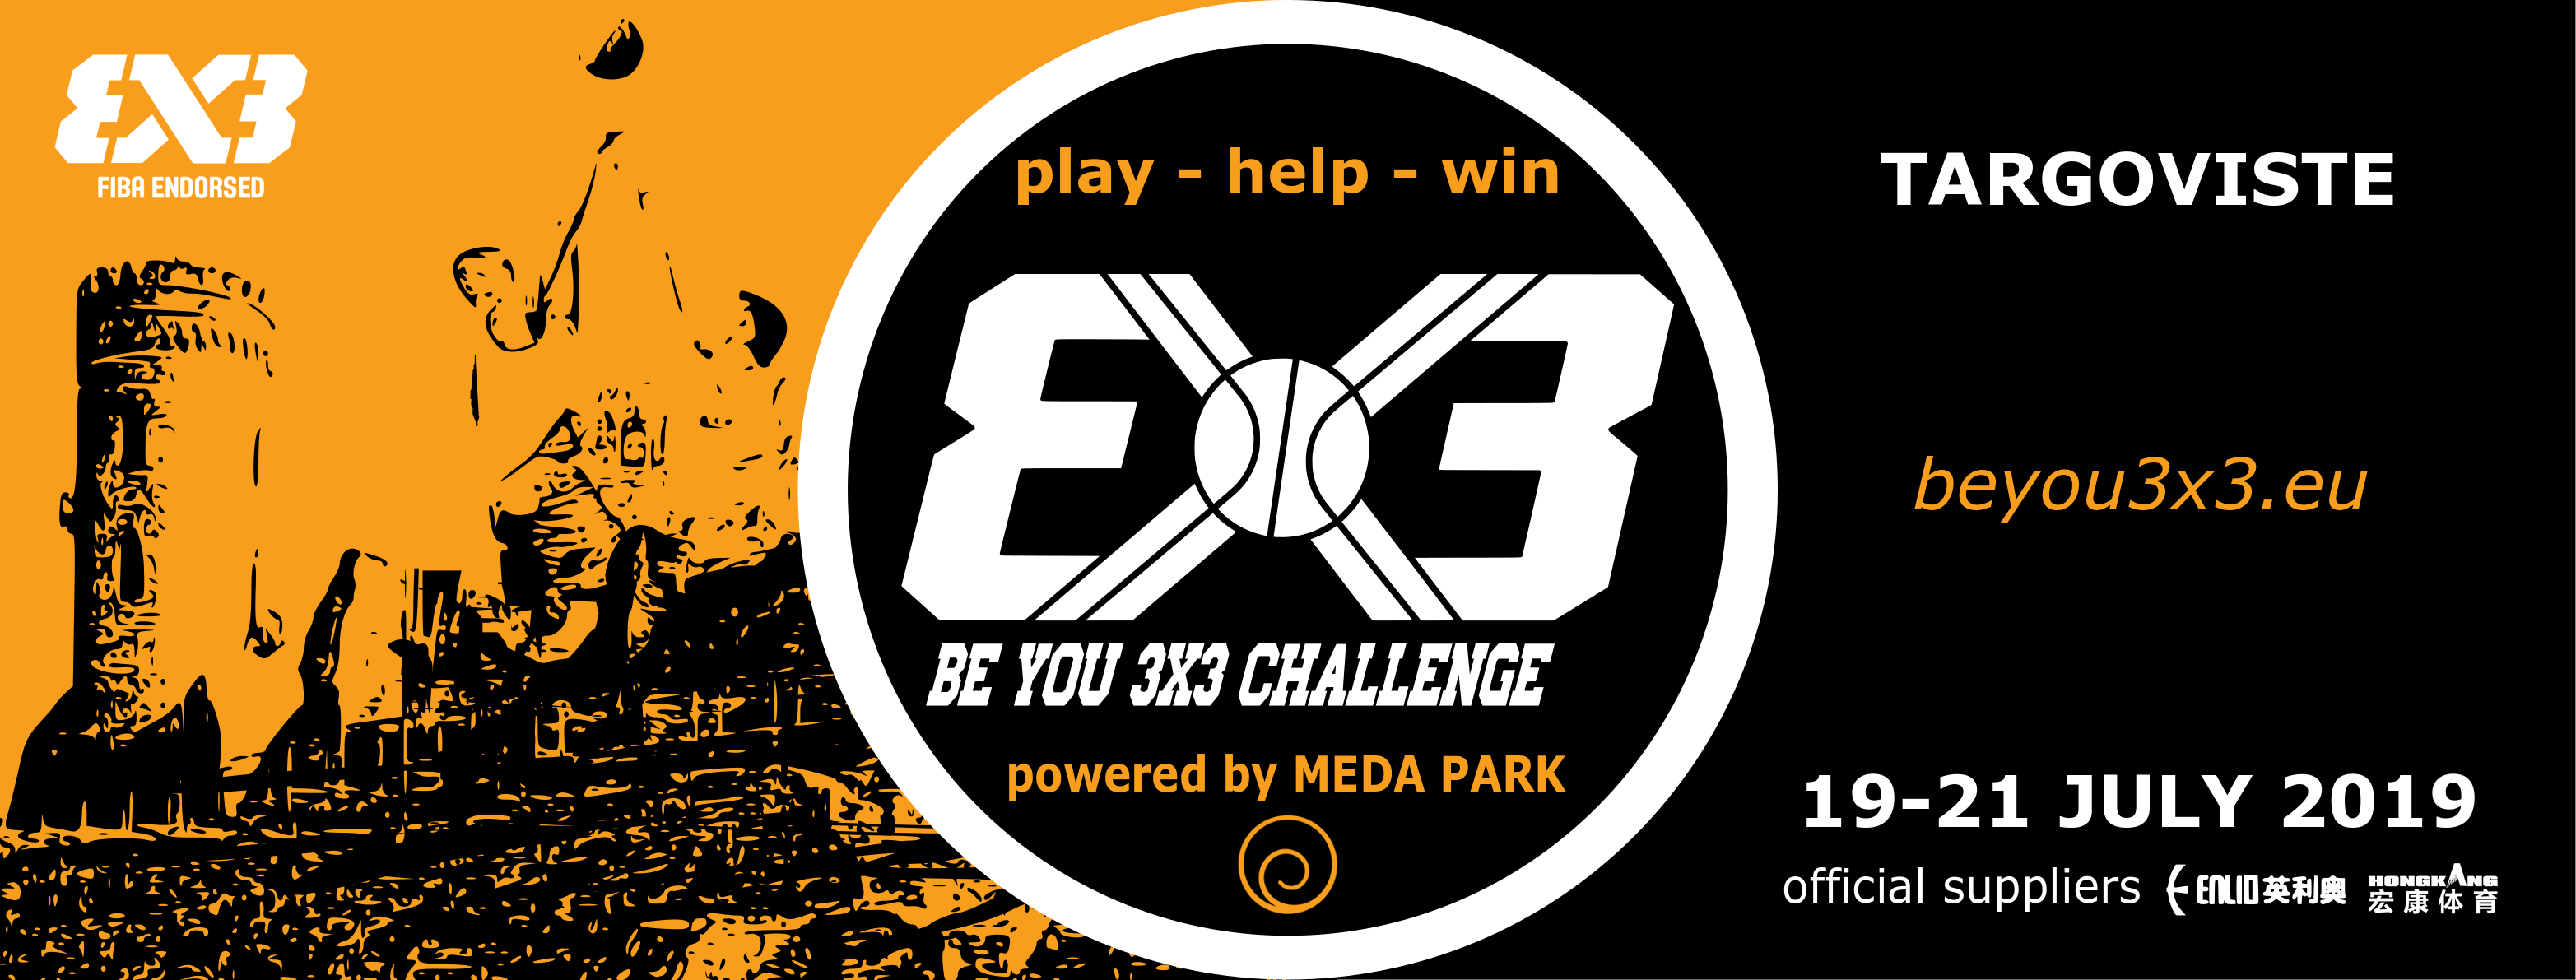 Be You 3X3 Challenge powered by Meda Park